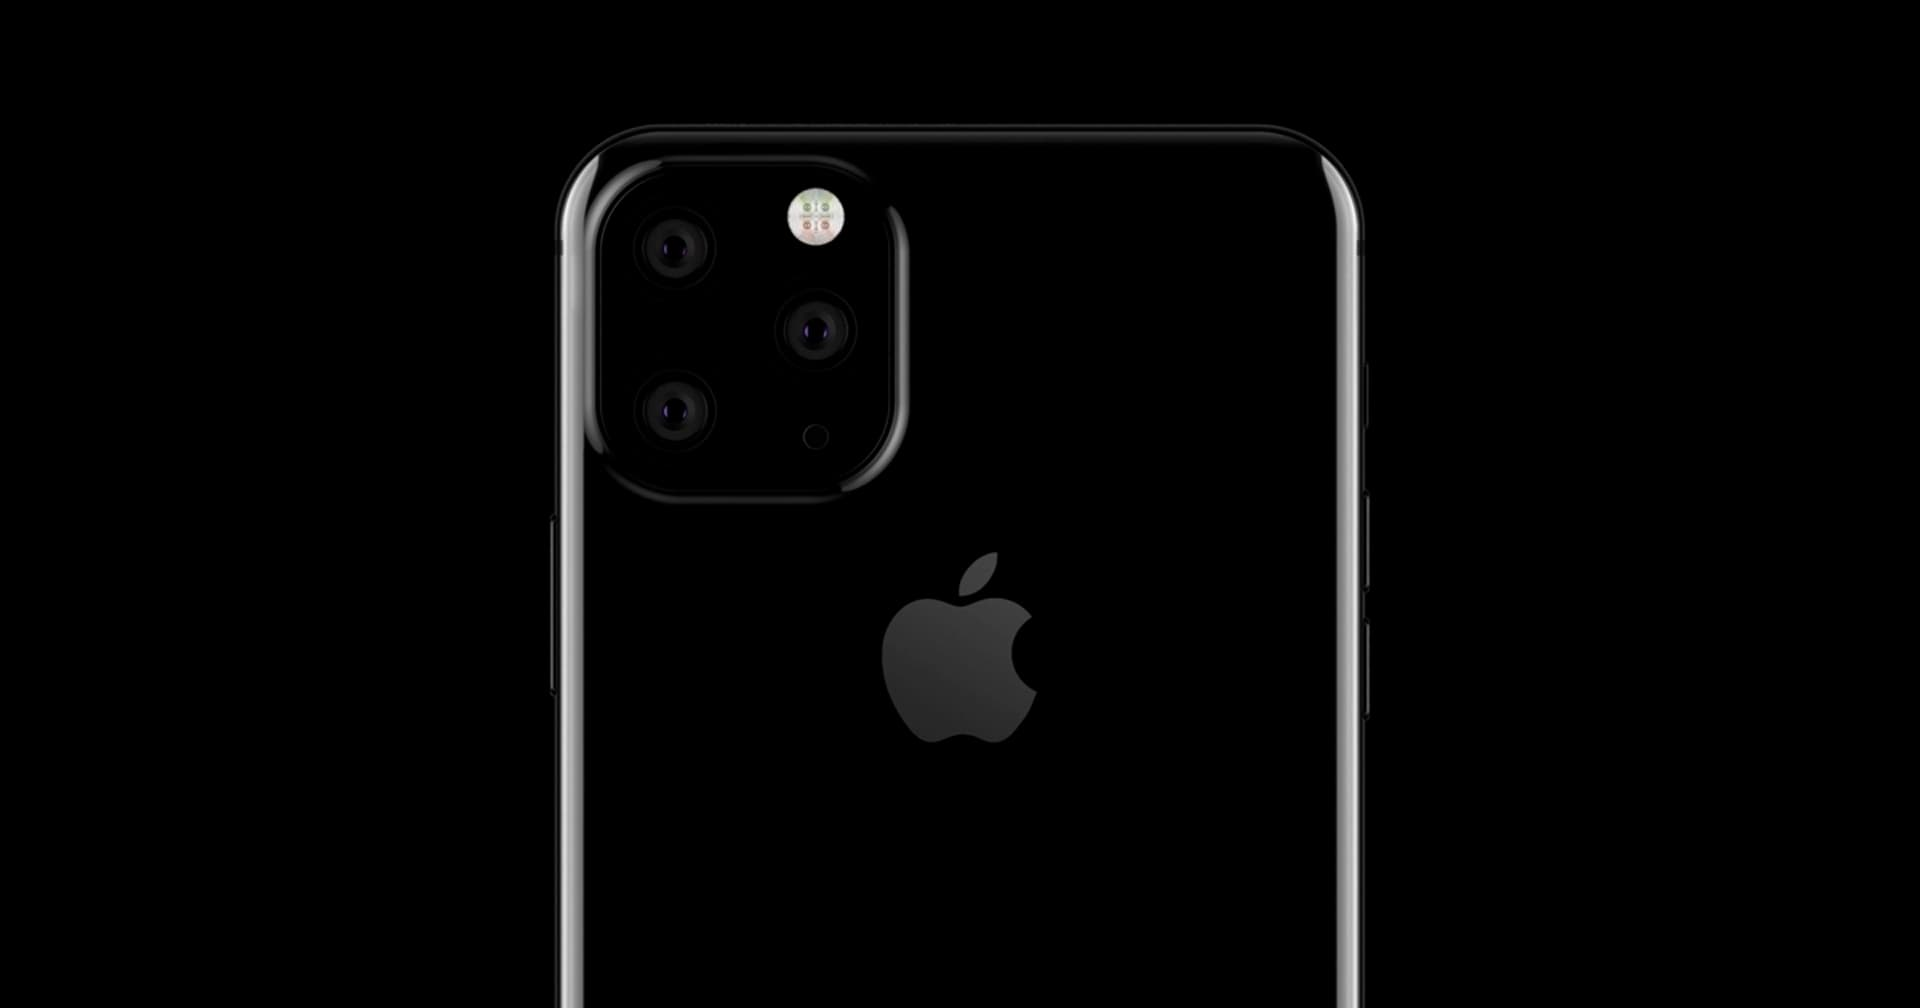 iphone XI айфон 11 (2019) прототип